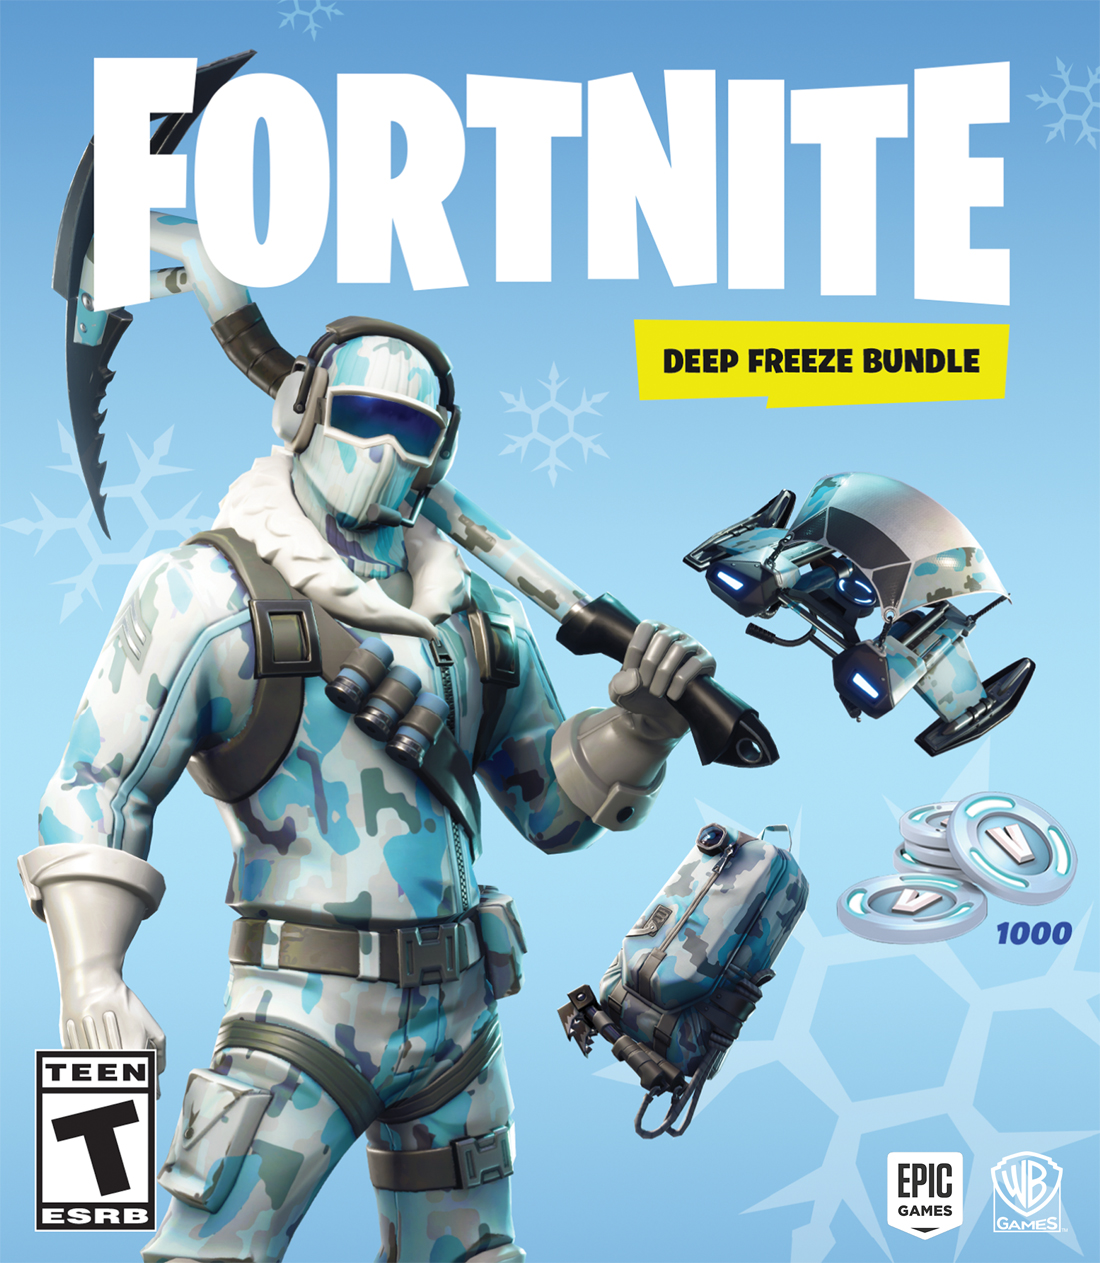 Fortnite: Deep Freeze Bundle with exclusive in-game content launching in November